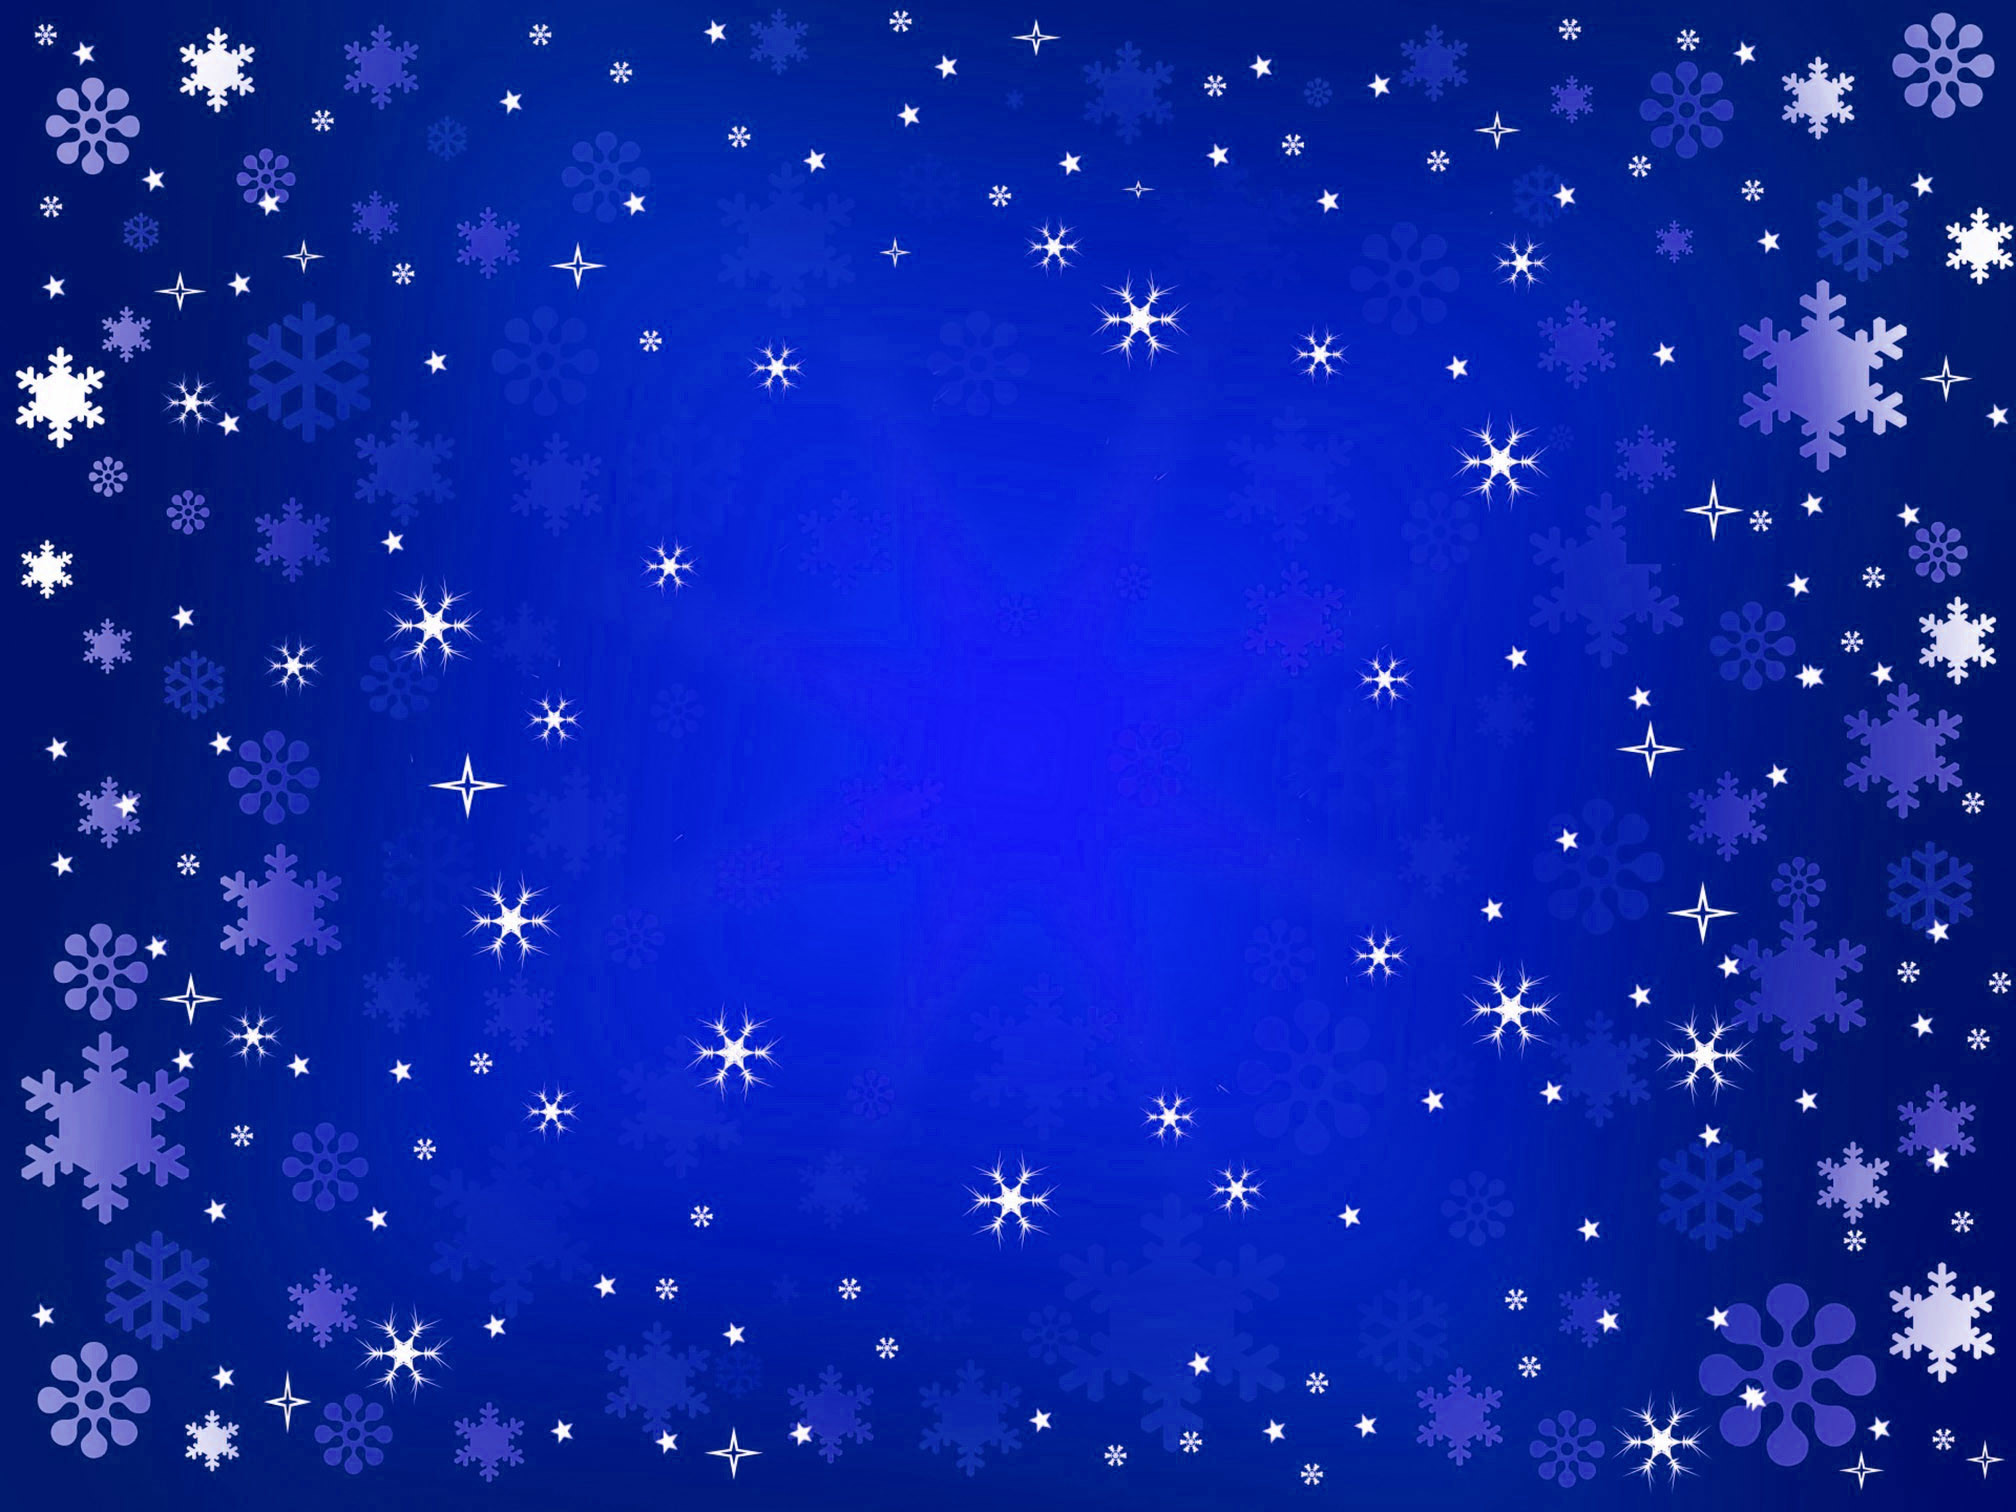 blue christmas background 38 images 2